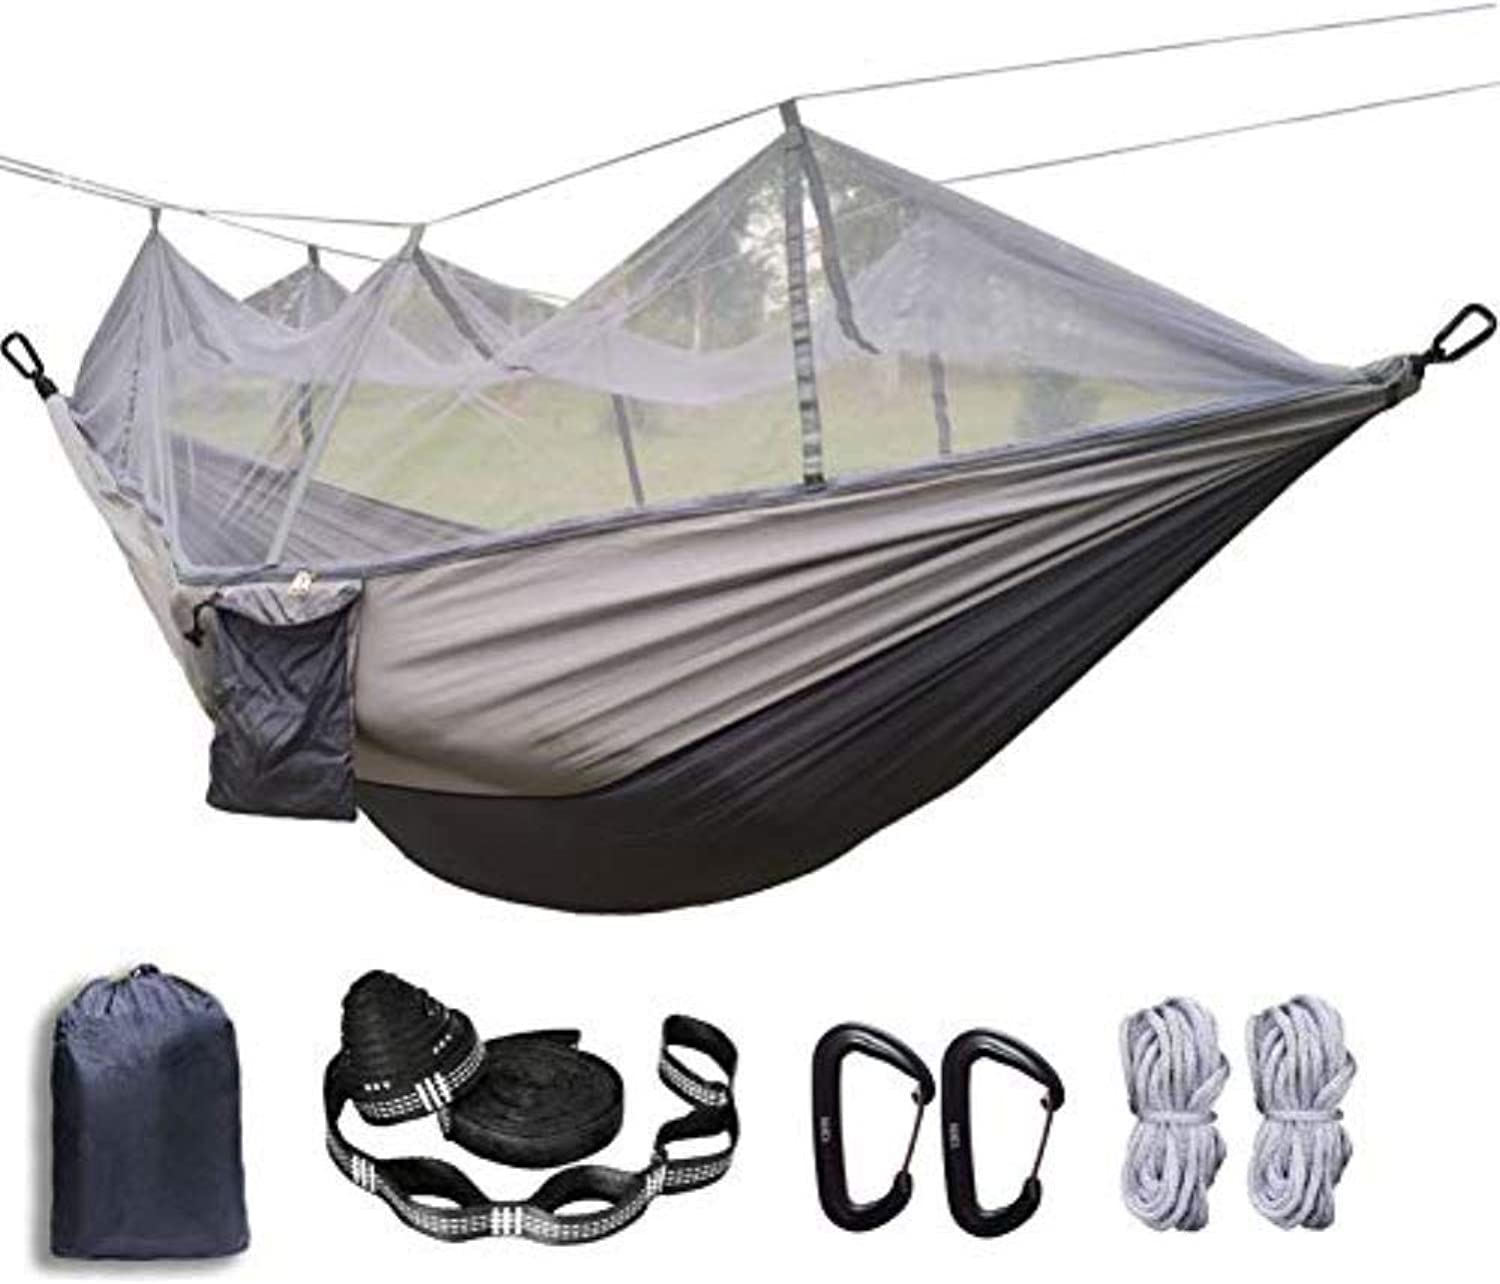 Portable Double Hammock,Camping Hammock with Mosquito Net, Foldable with Mosquito net Hammock ,for Backpacks, Travel, Beach, Garden